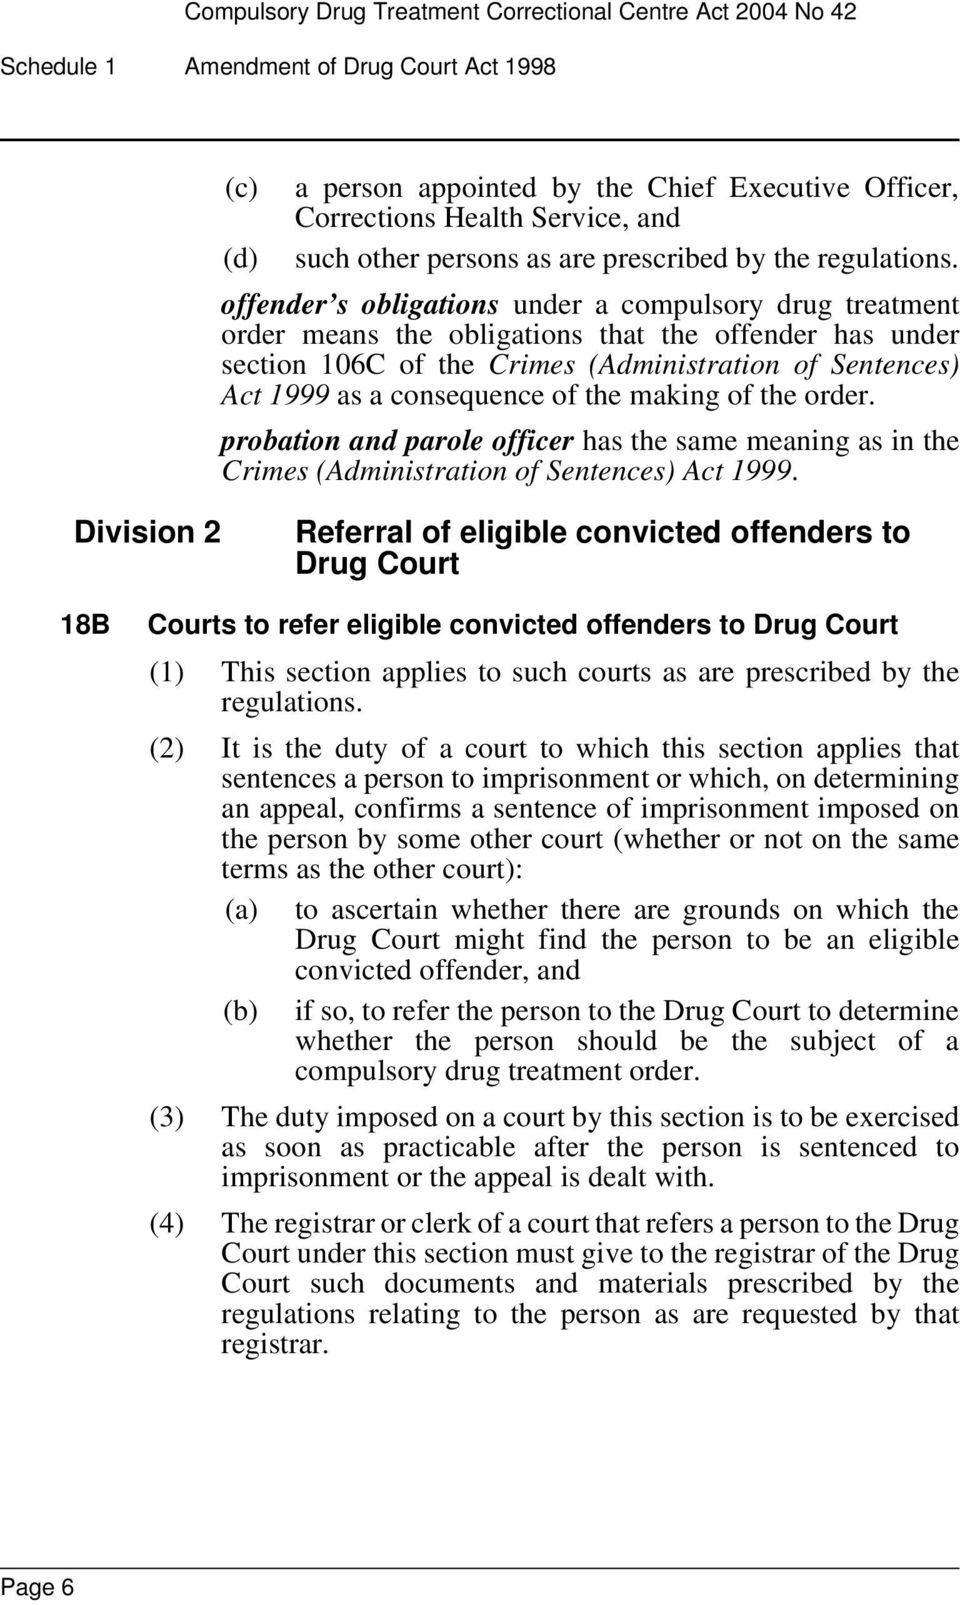 the making of the order. probation and parole officer has the same meaning as in the Crimes (Administration of Sentences) Act 1999.